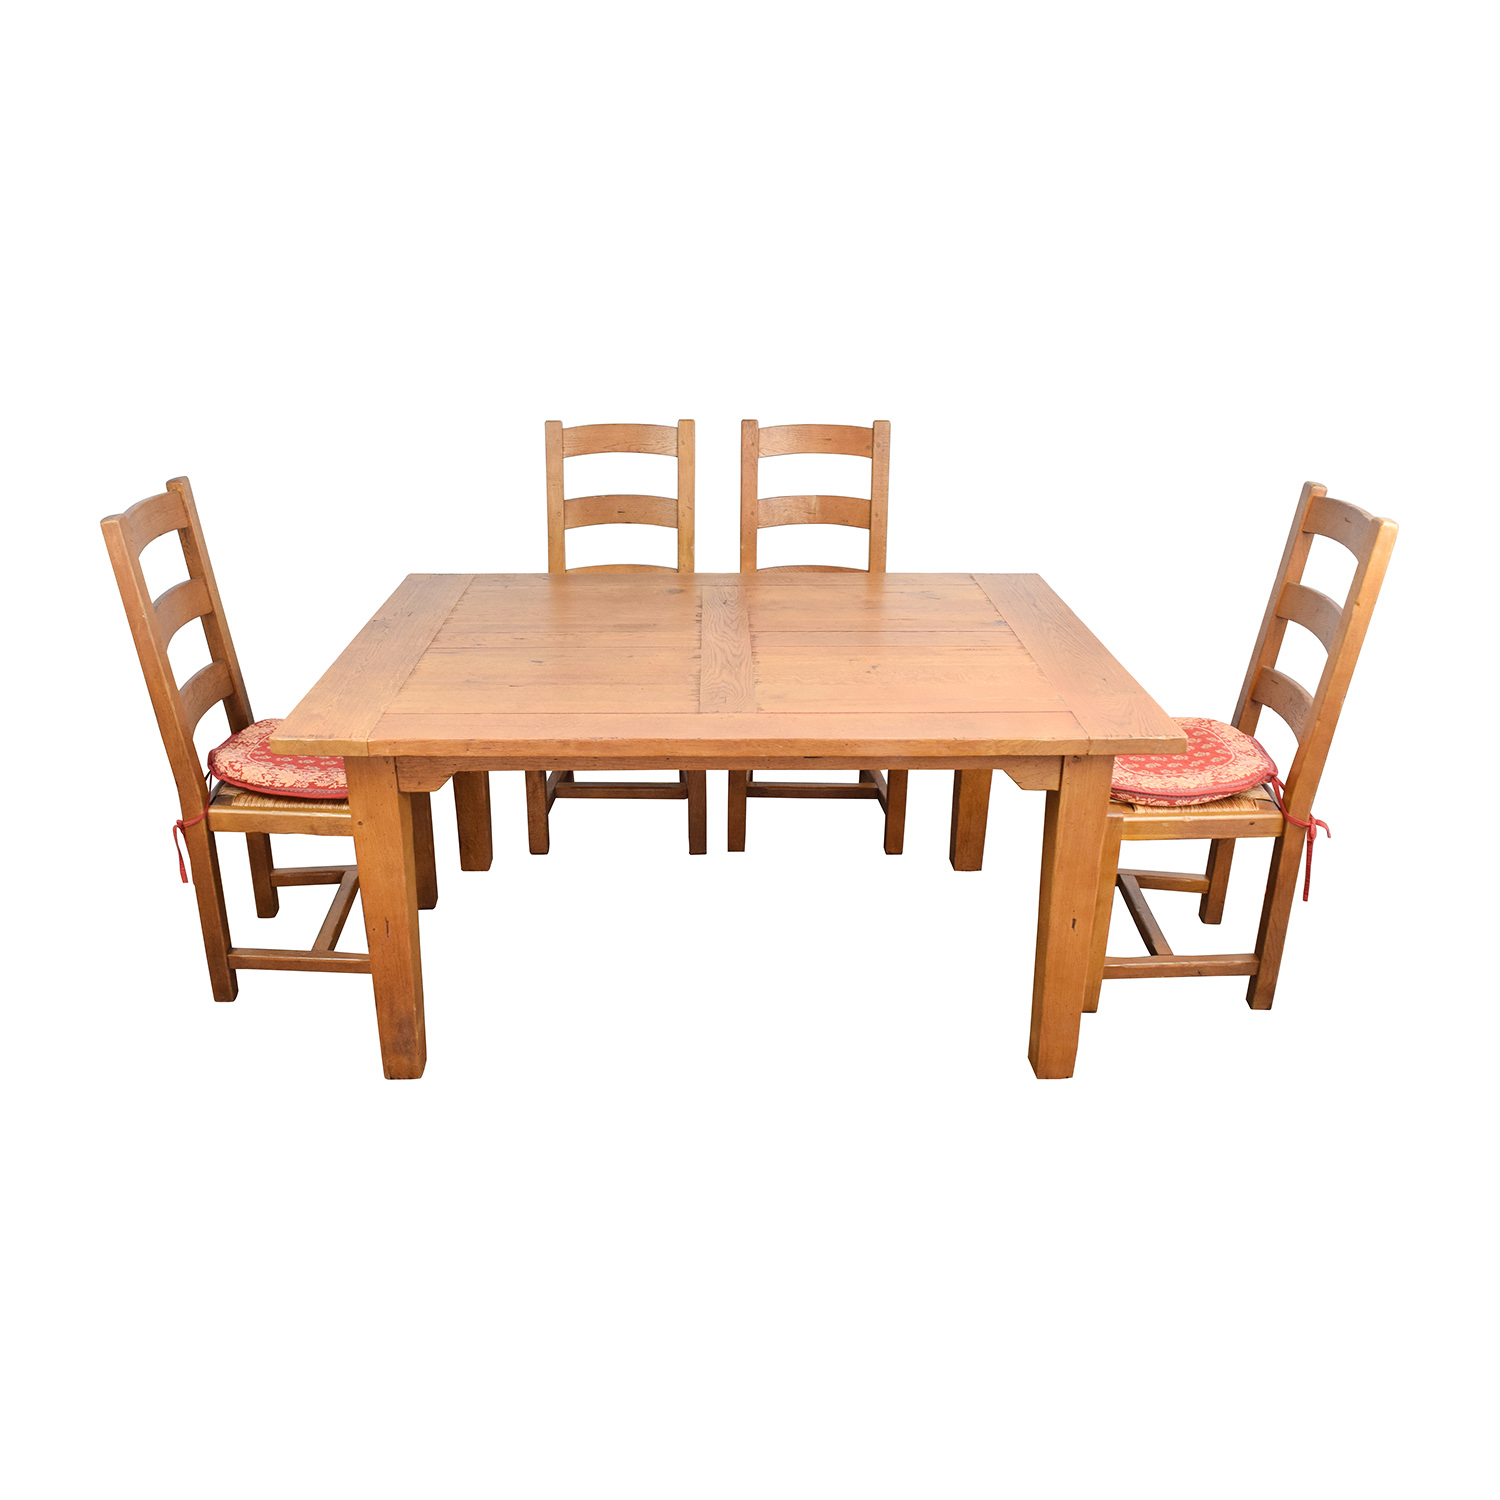 Crate and Barrel Crate & Barrel French Farm Dining Set for sale